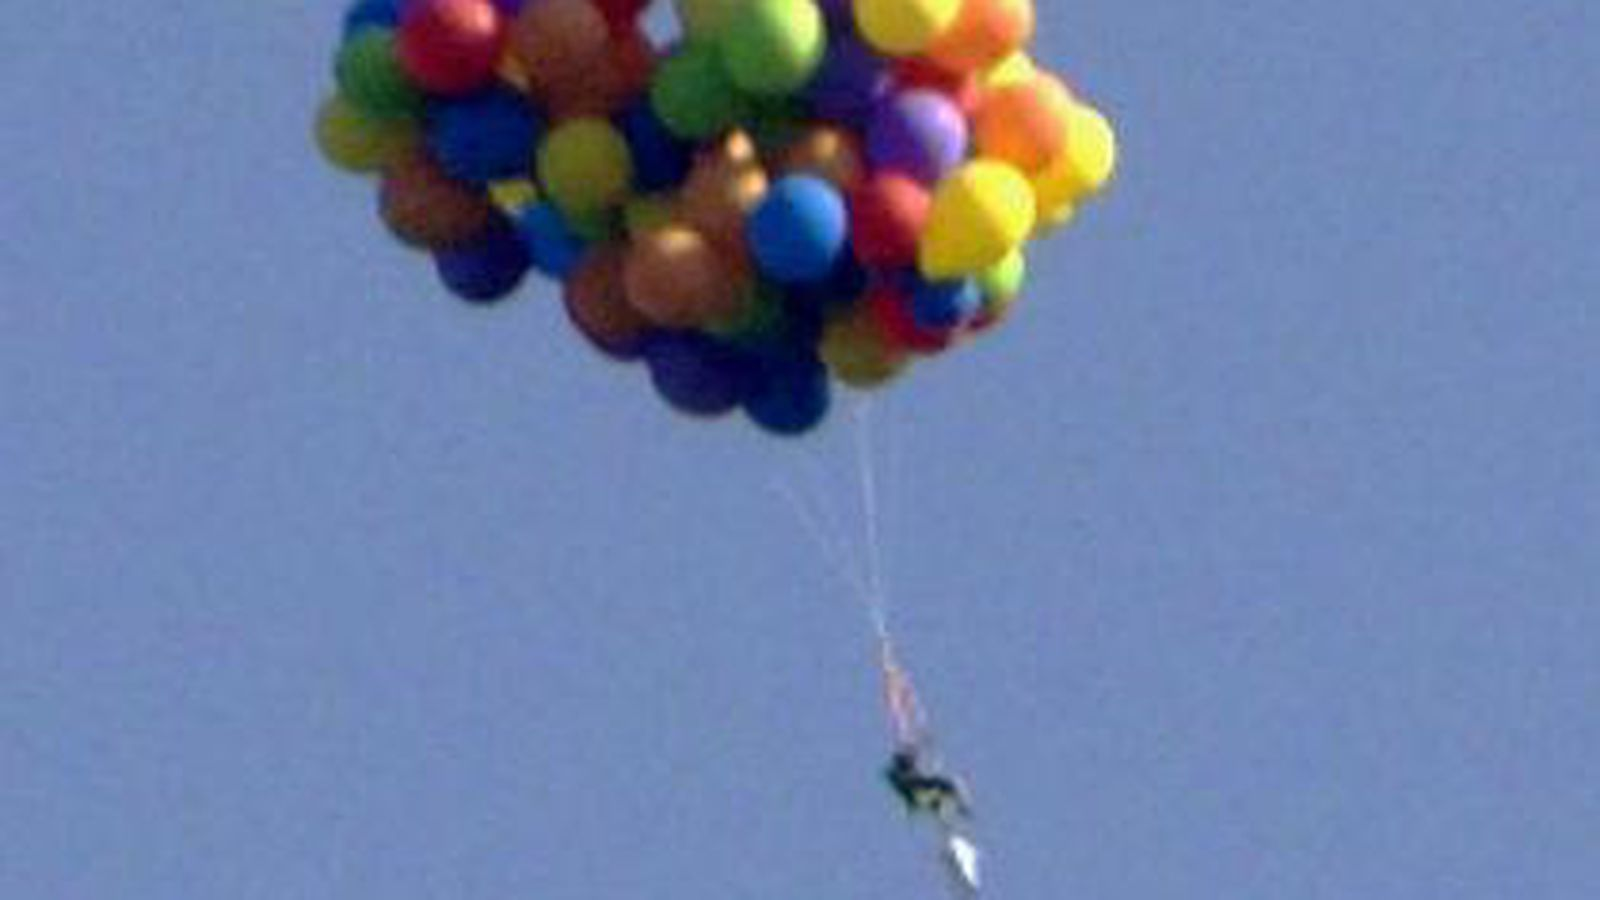 Lawn chair larry walters - Man Flying Over Canada In Balloon Powered Lawn Chair Is Real Life Up Sbnation Com